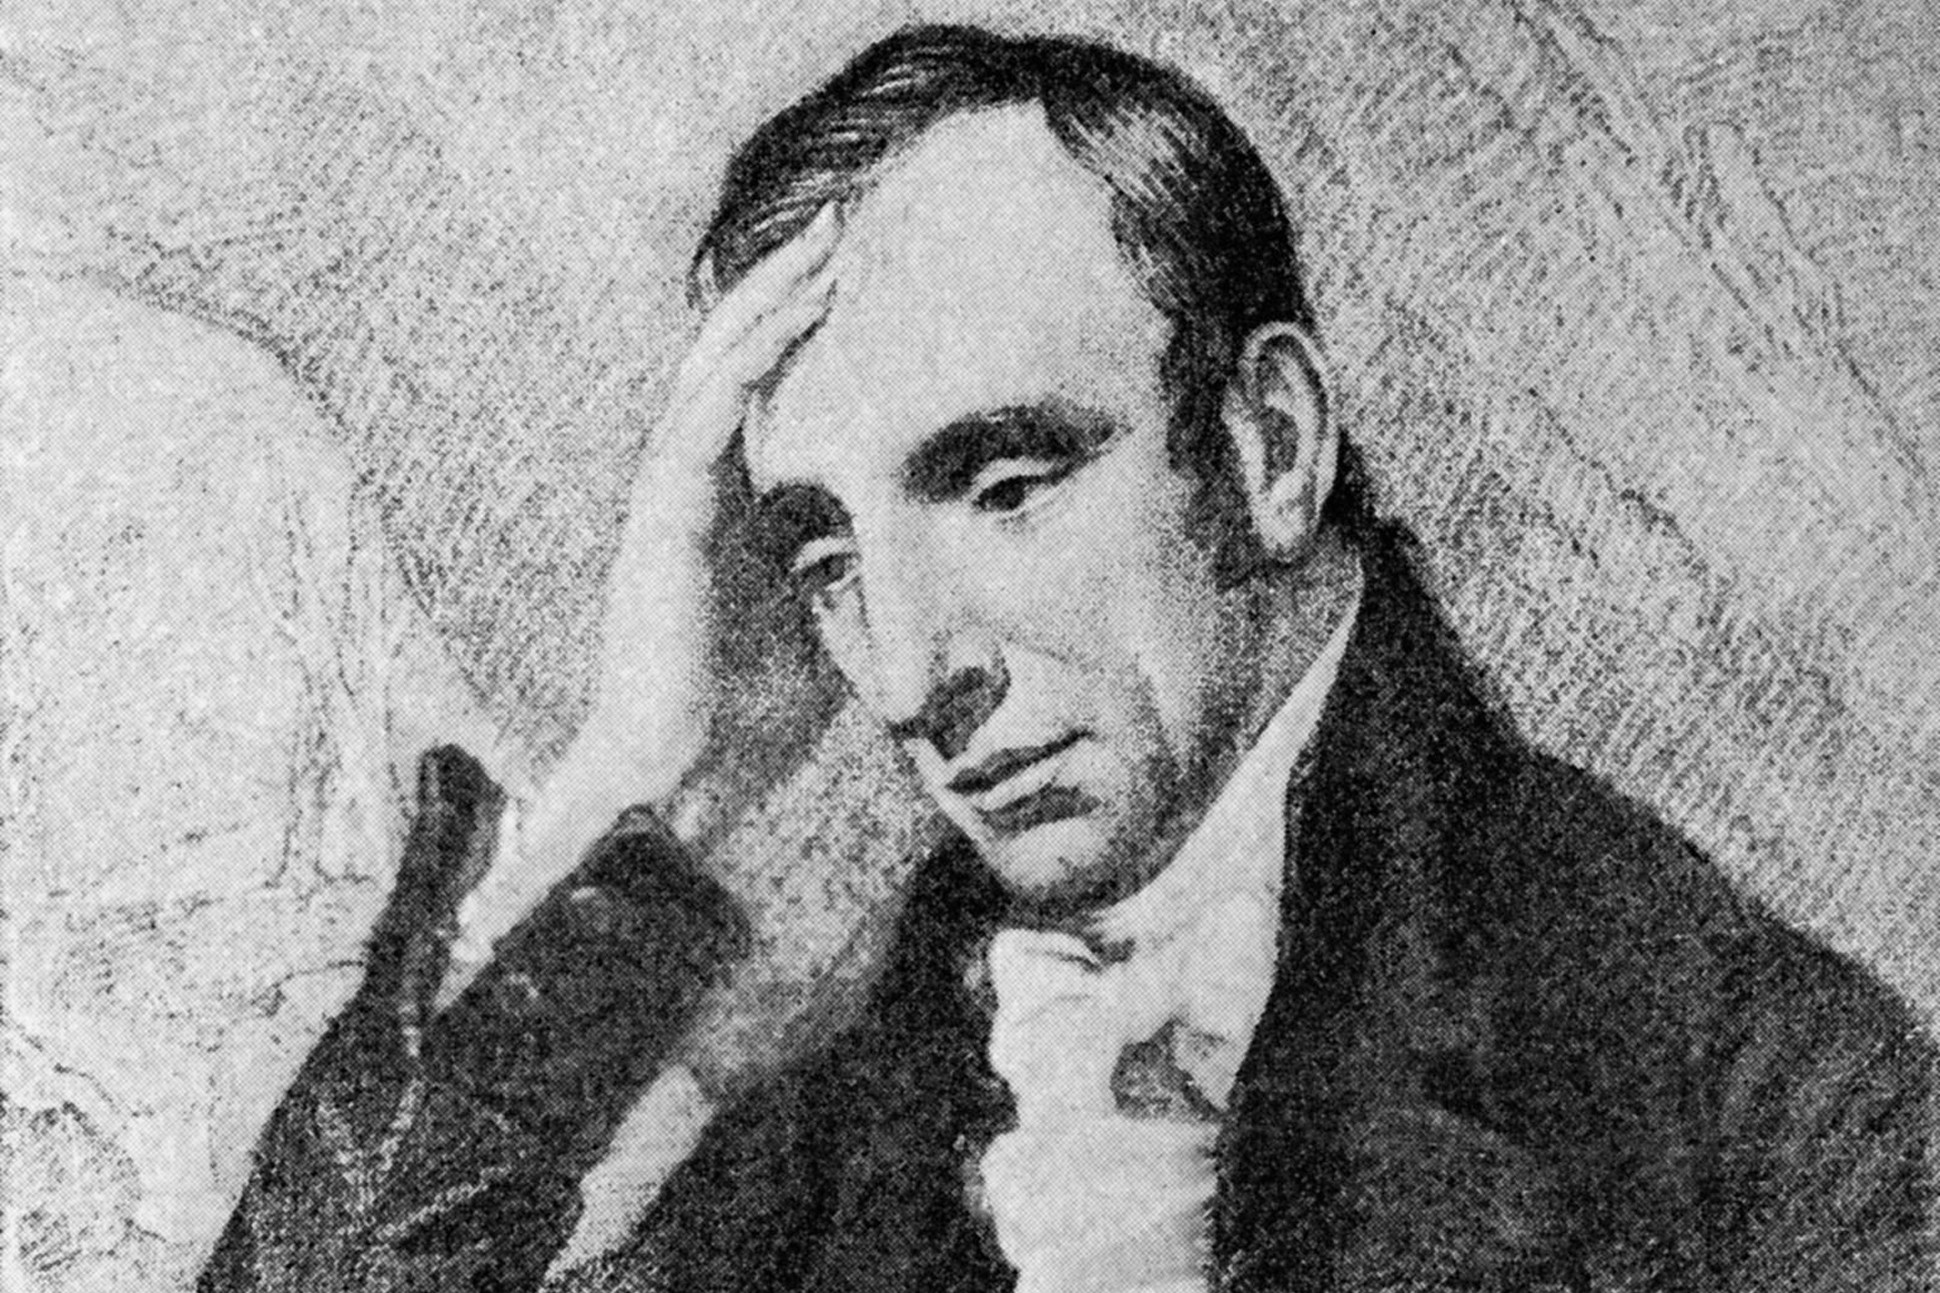 william wordsworth William wordsworth was an early leader of romanticism (a literary movement that celebrated nature and concentrated on human emotions) in english poetry and ranks as one of the greatest lyric poets in the history of english literature.